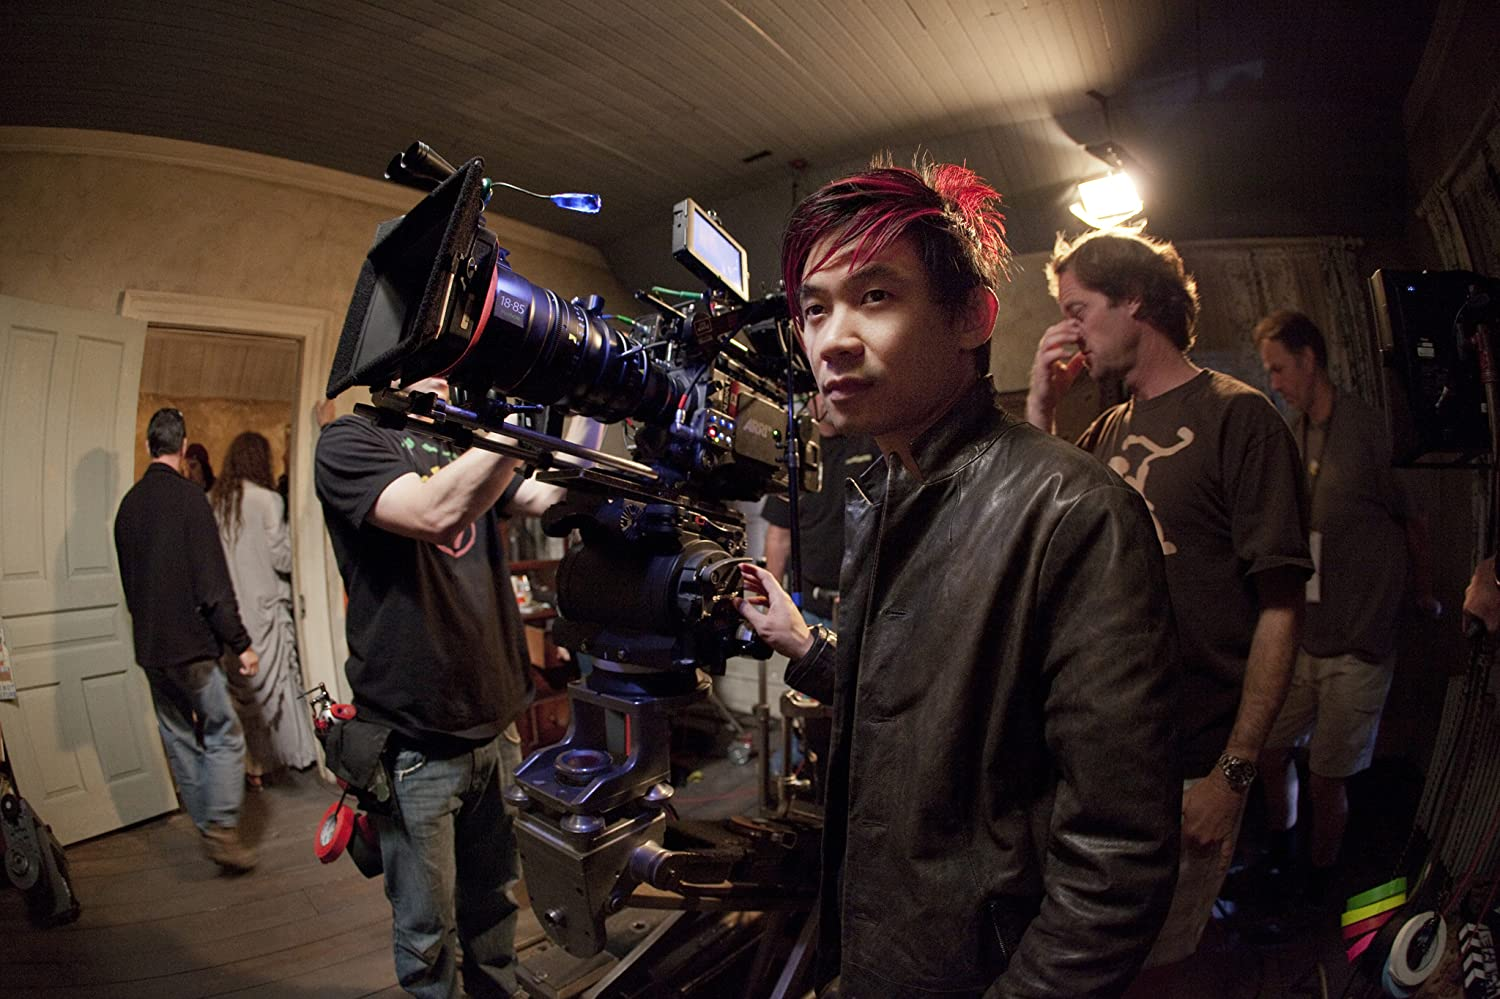 James Wan in The Conjuring (2013)